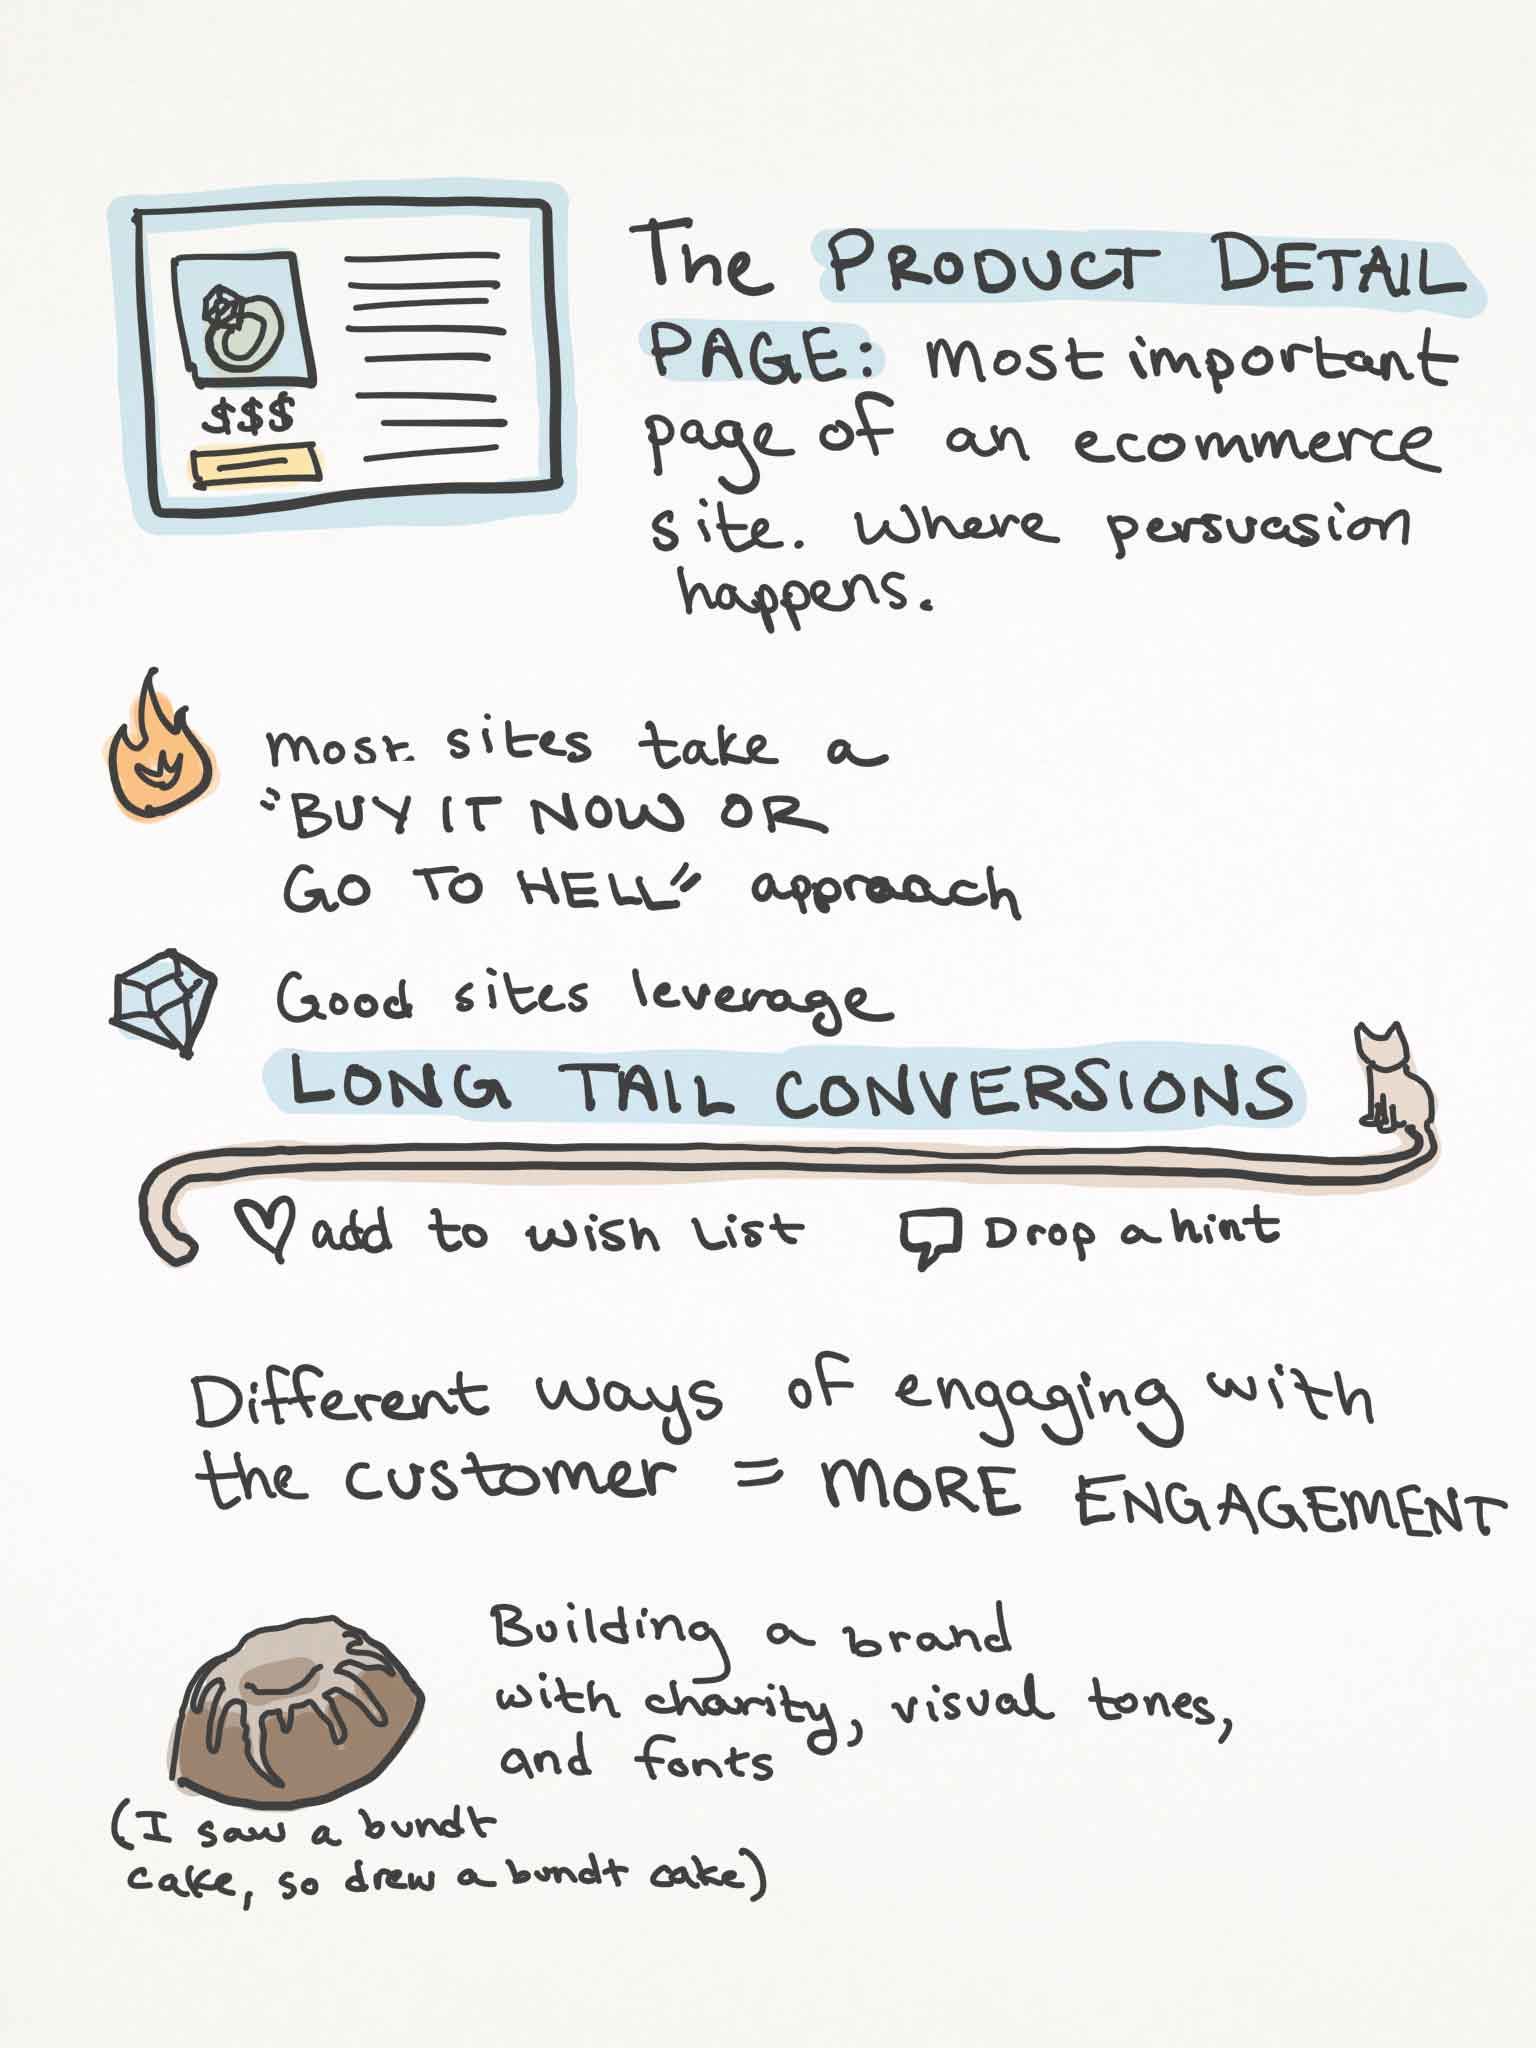 Sketchnotes page 2 of Jeffrey Zeldman's talk